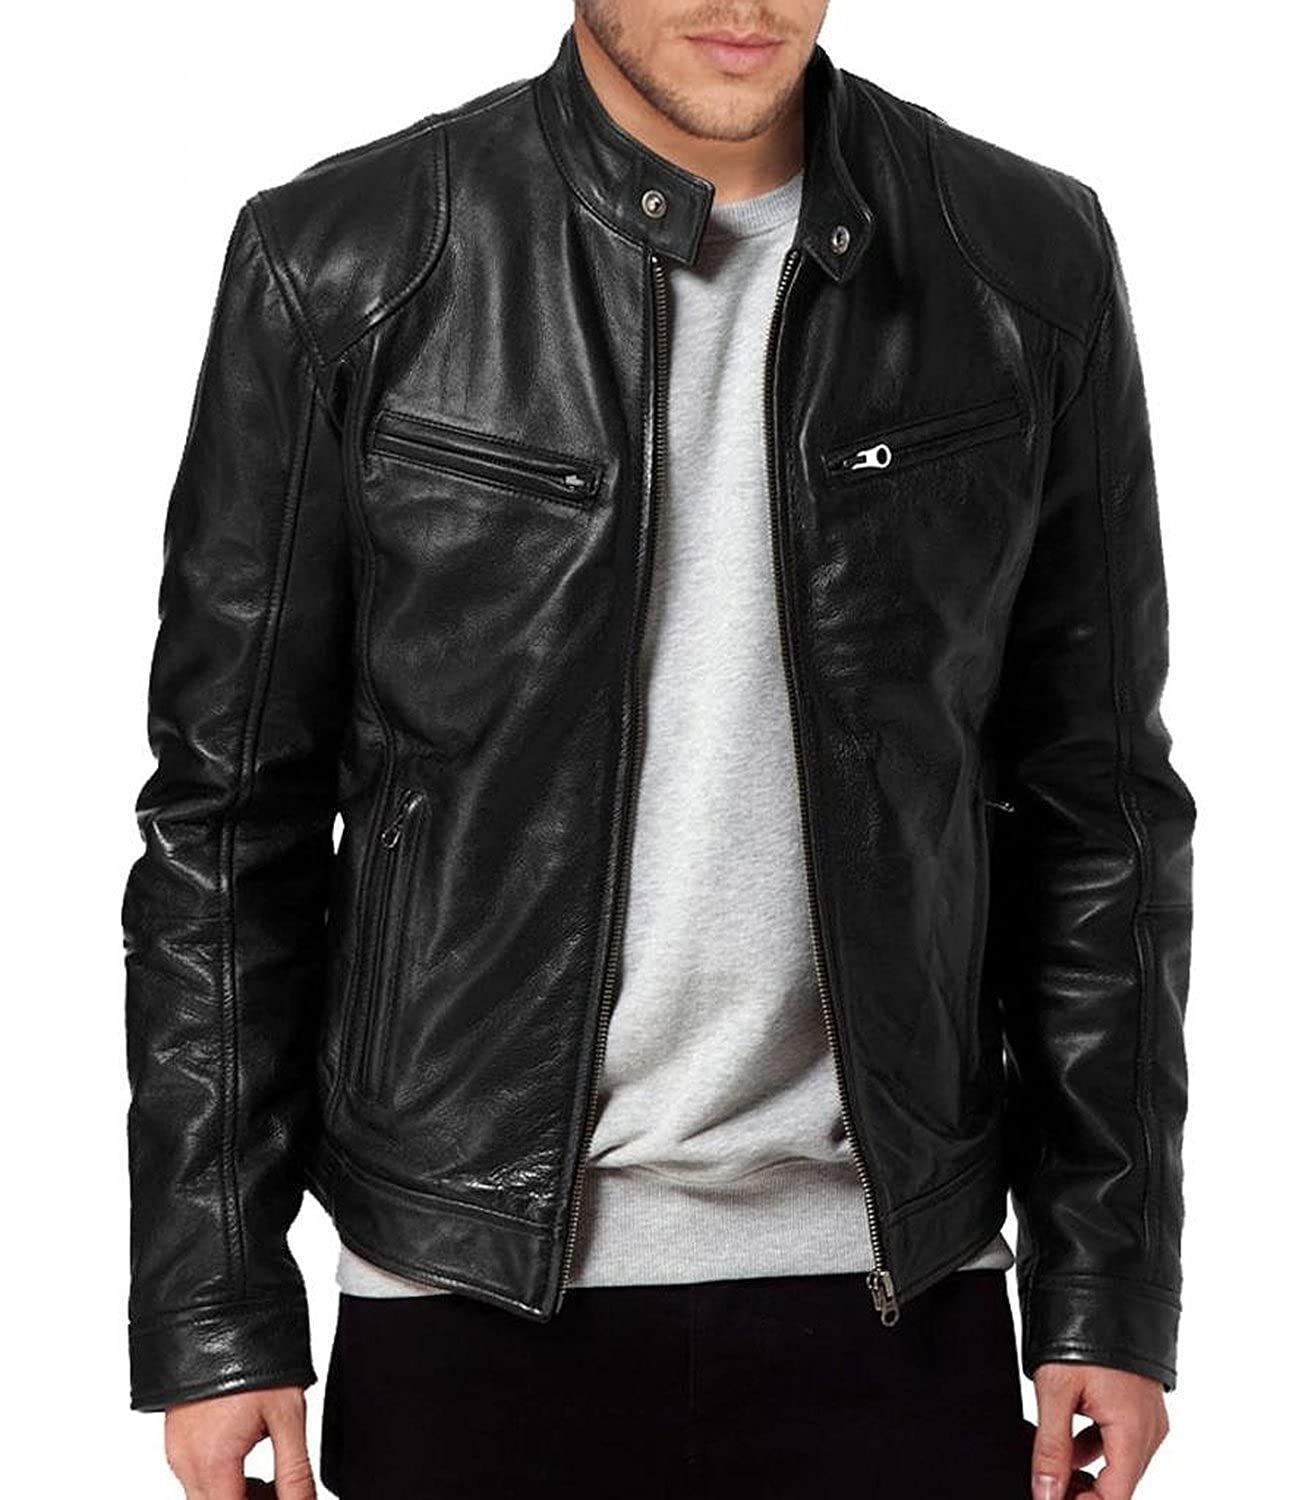 Laverapelle Men's Lamb Skin Real Leather jacket Black - 1510014